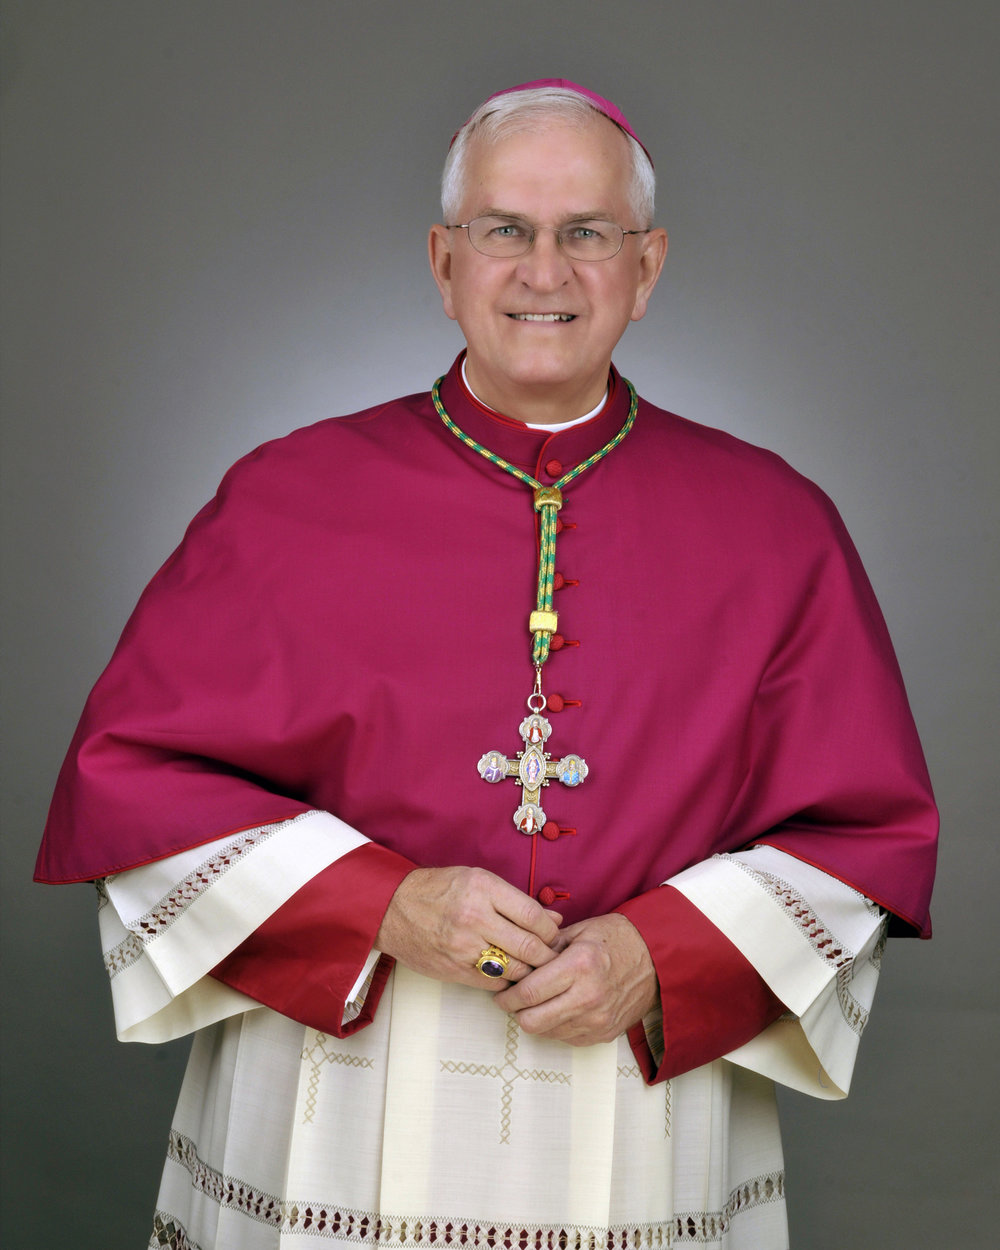 Archbishop Joseph Edward Kurtz of Louisville  Chairman